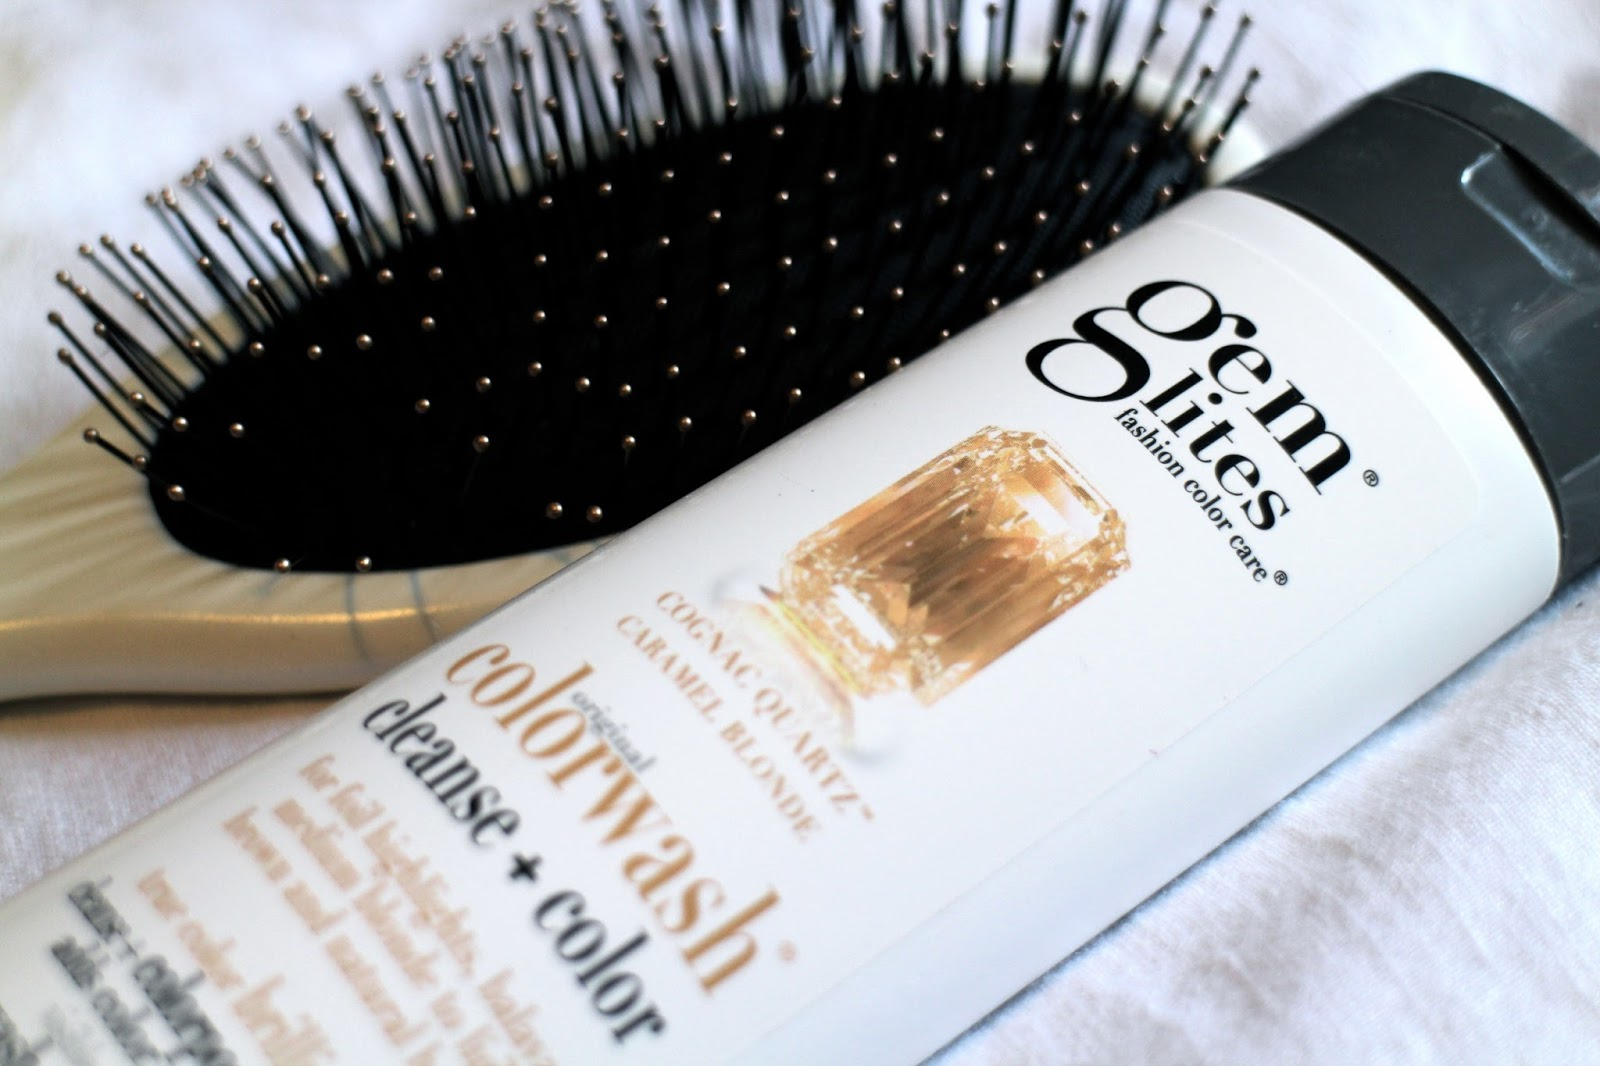 Marula Oil brush and Gem Lites colorwash shampoo